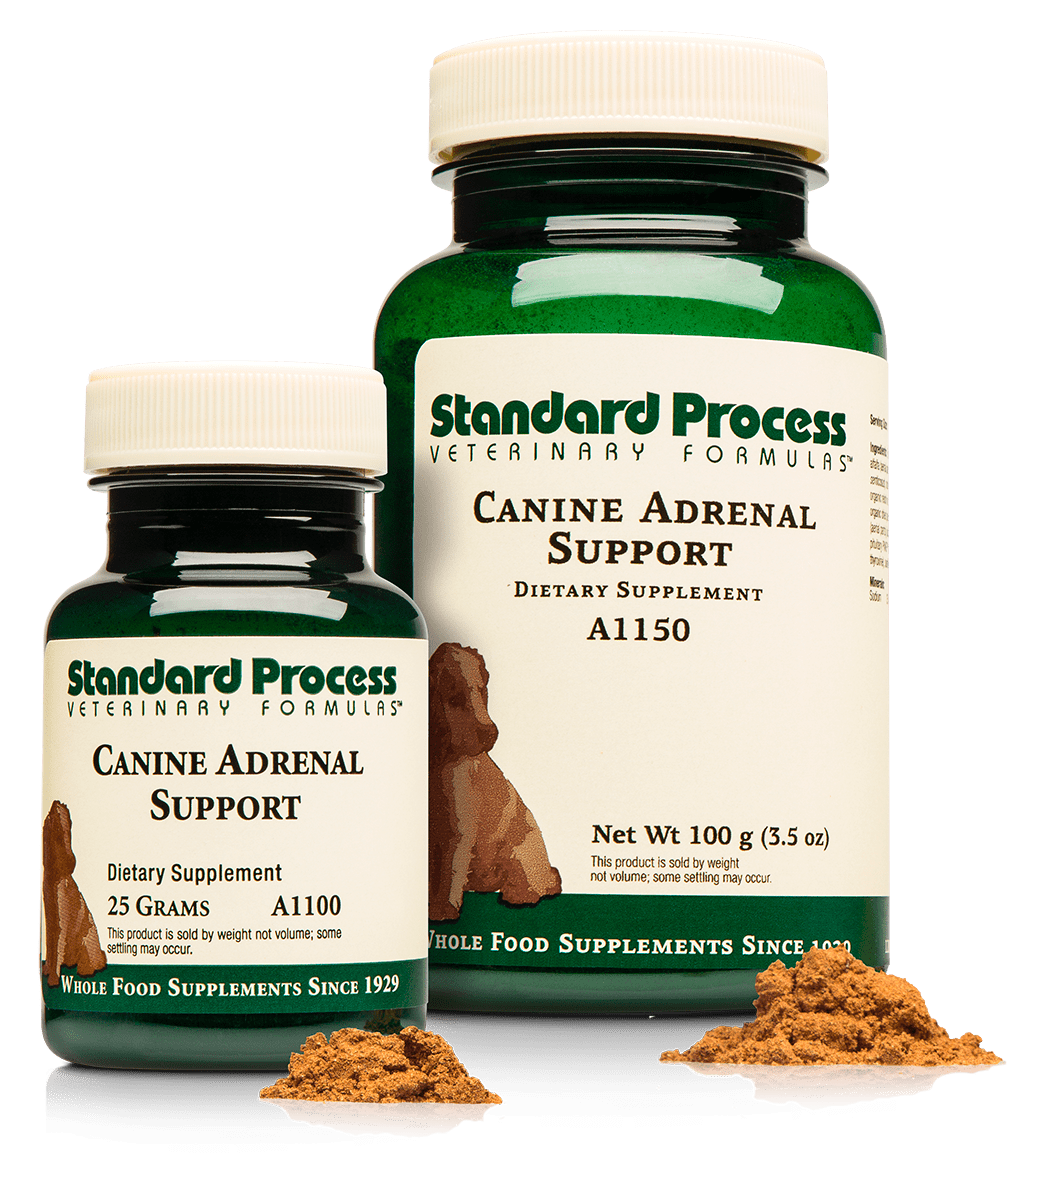 Canine Adrenal Support